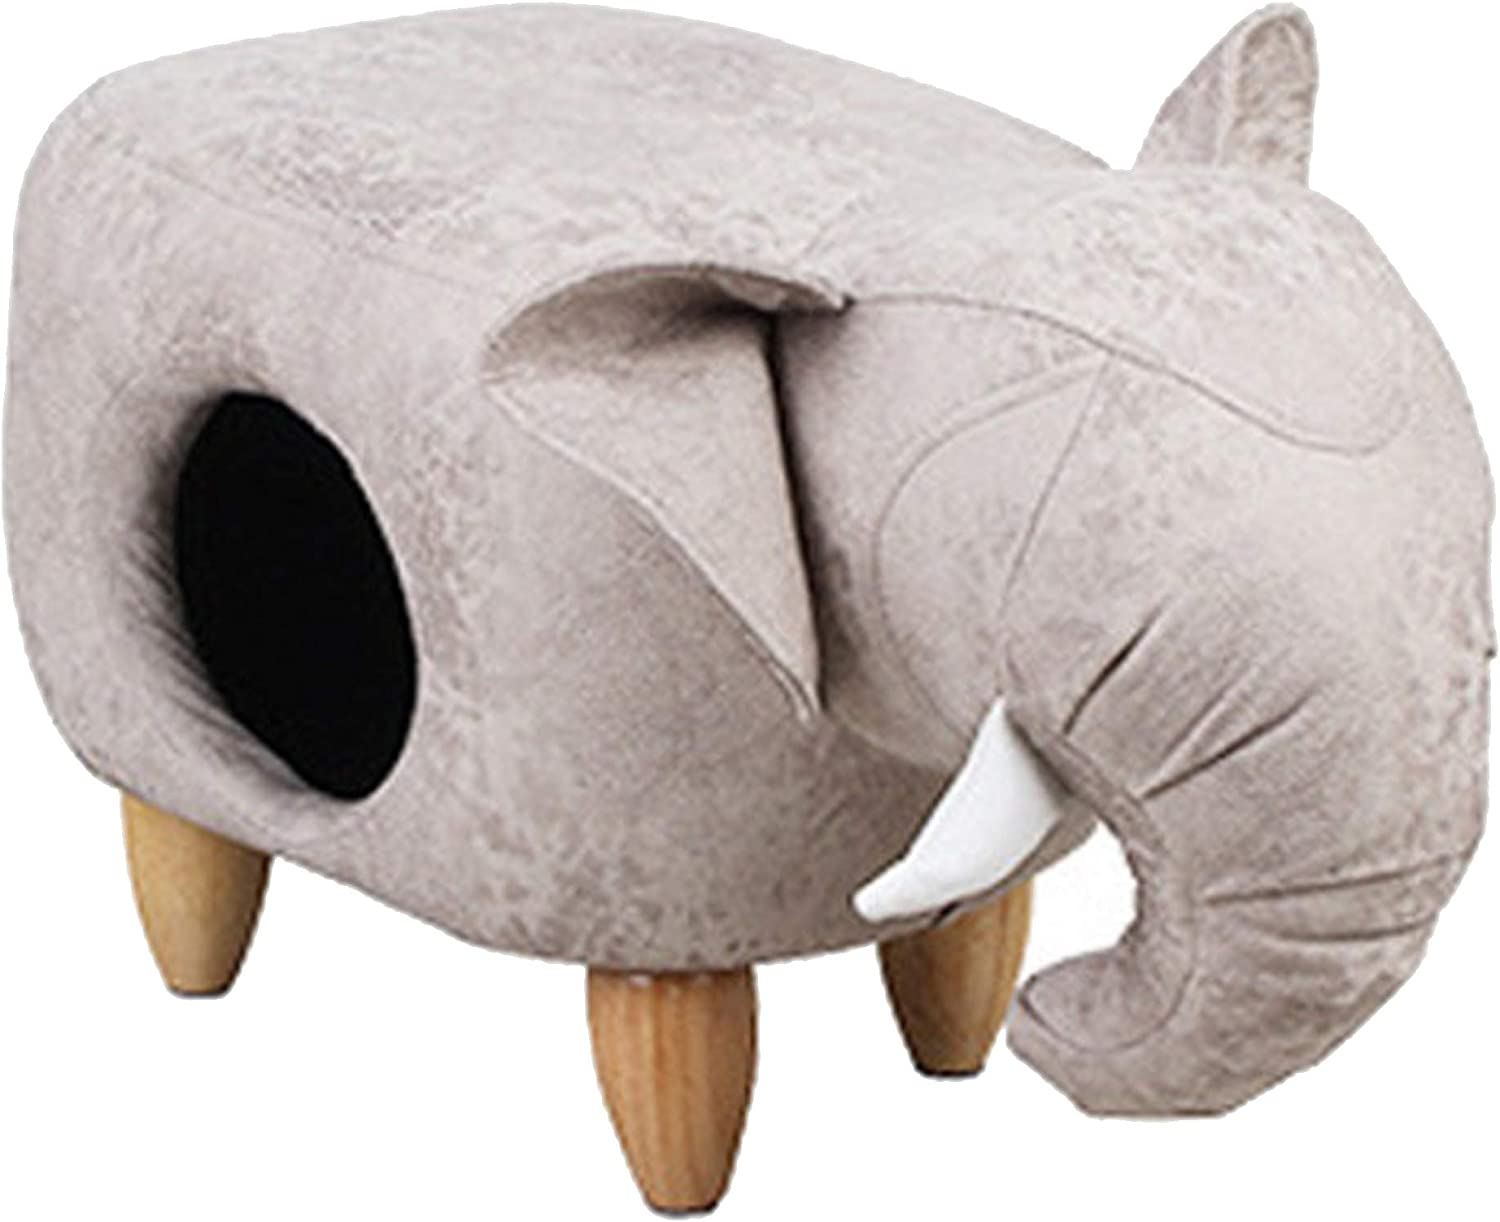 Cat Chair Fabric Los Angeles Mall Wooden Animal Pet House Dog Furni Popular products